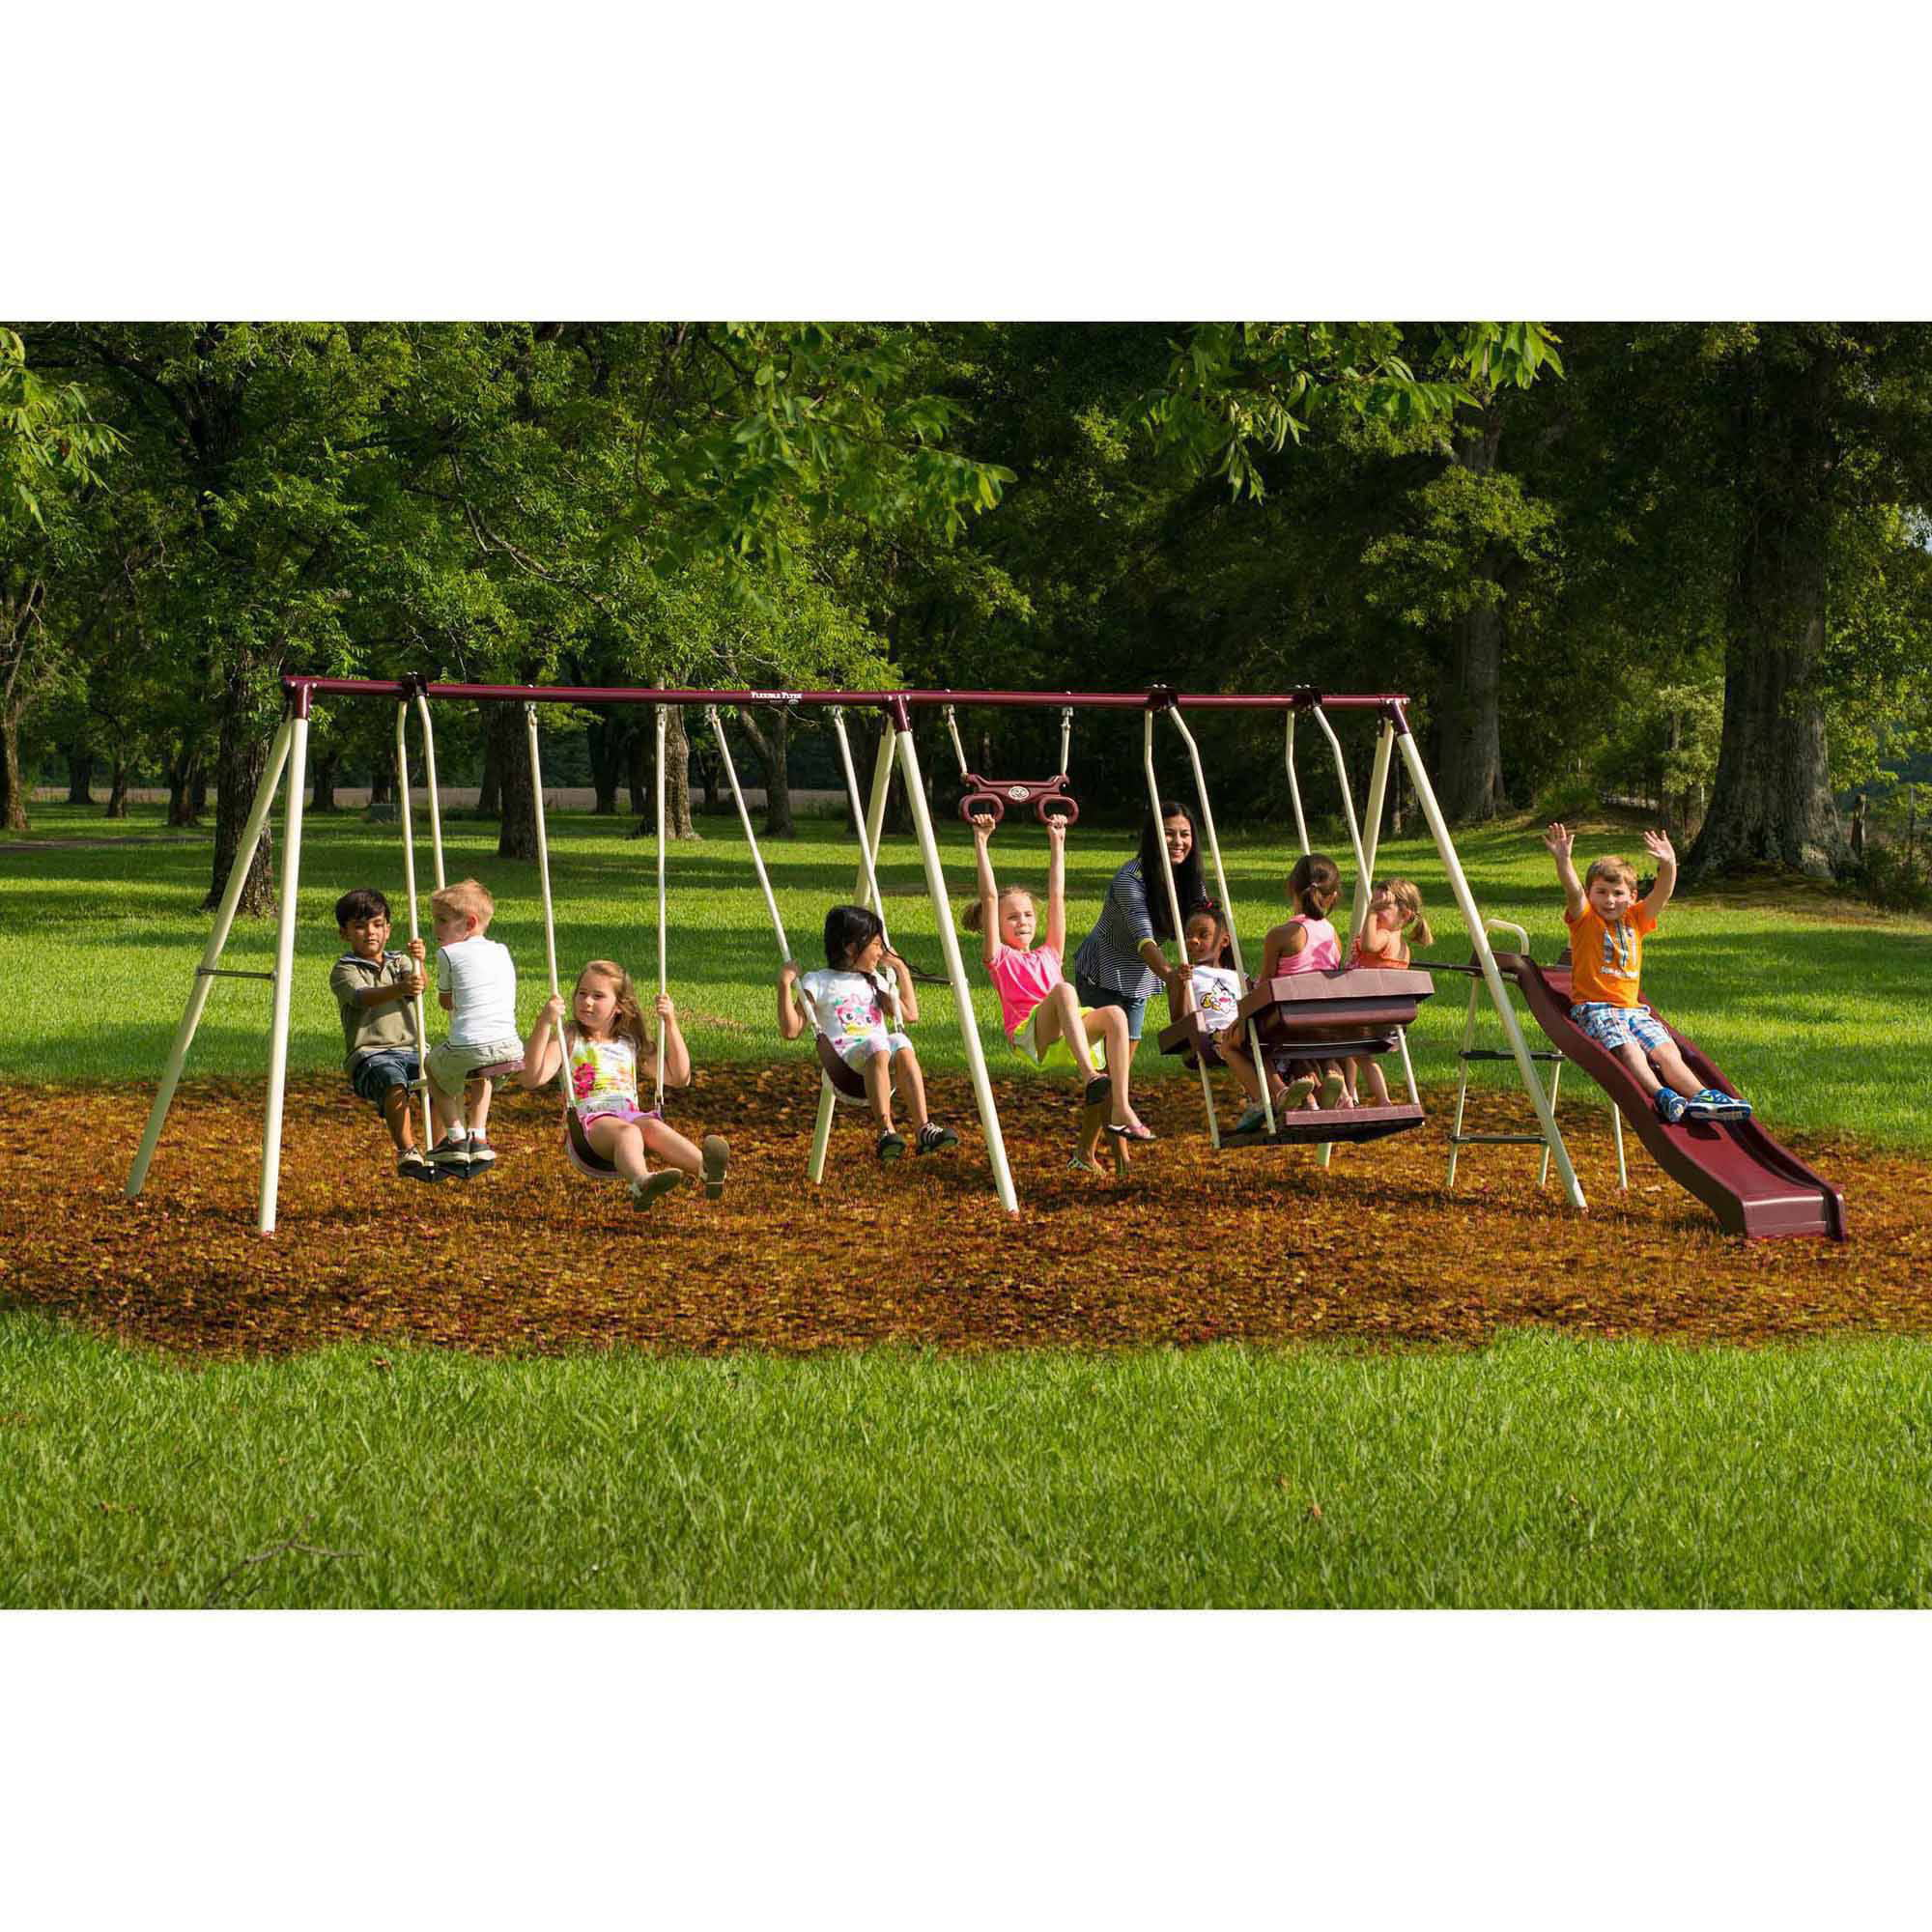 Backyard Play flexible flyer play park metal swing set - walmart